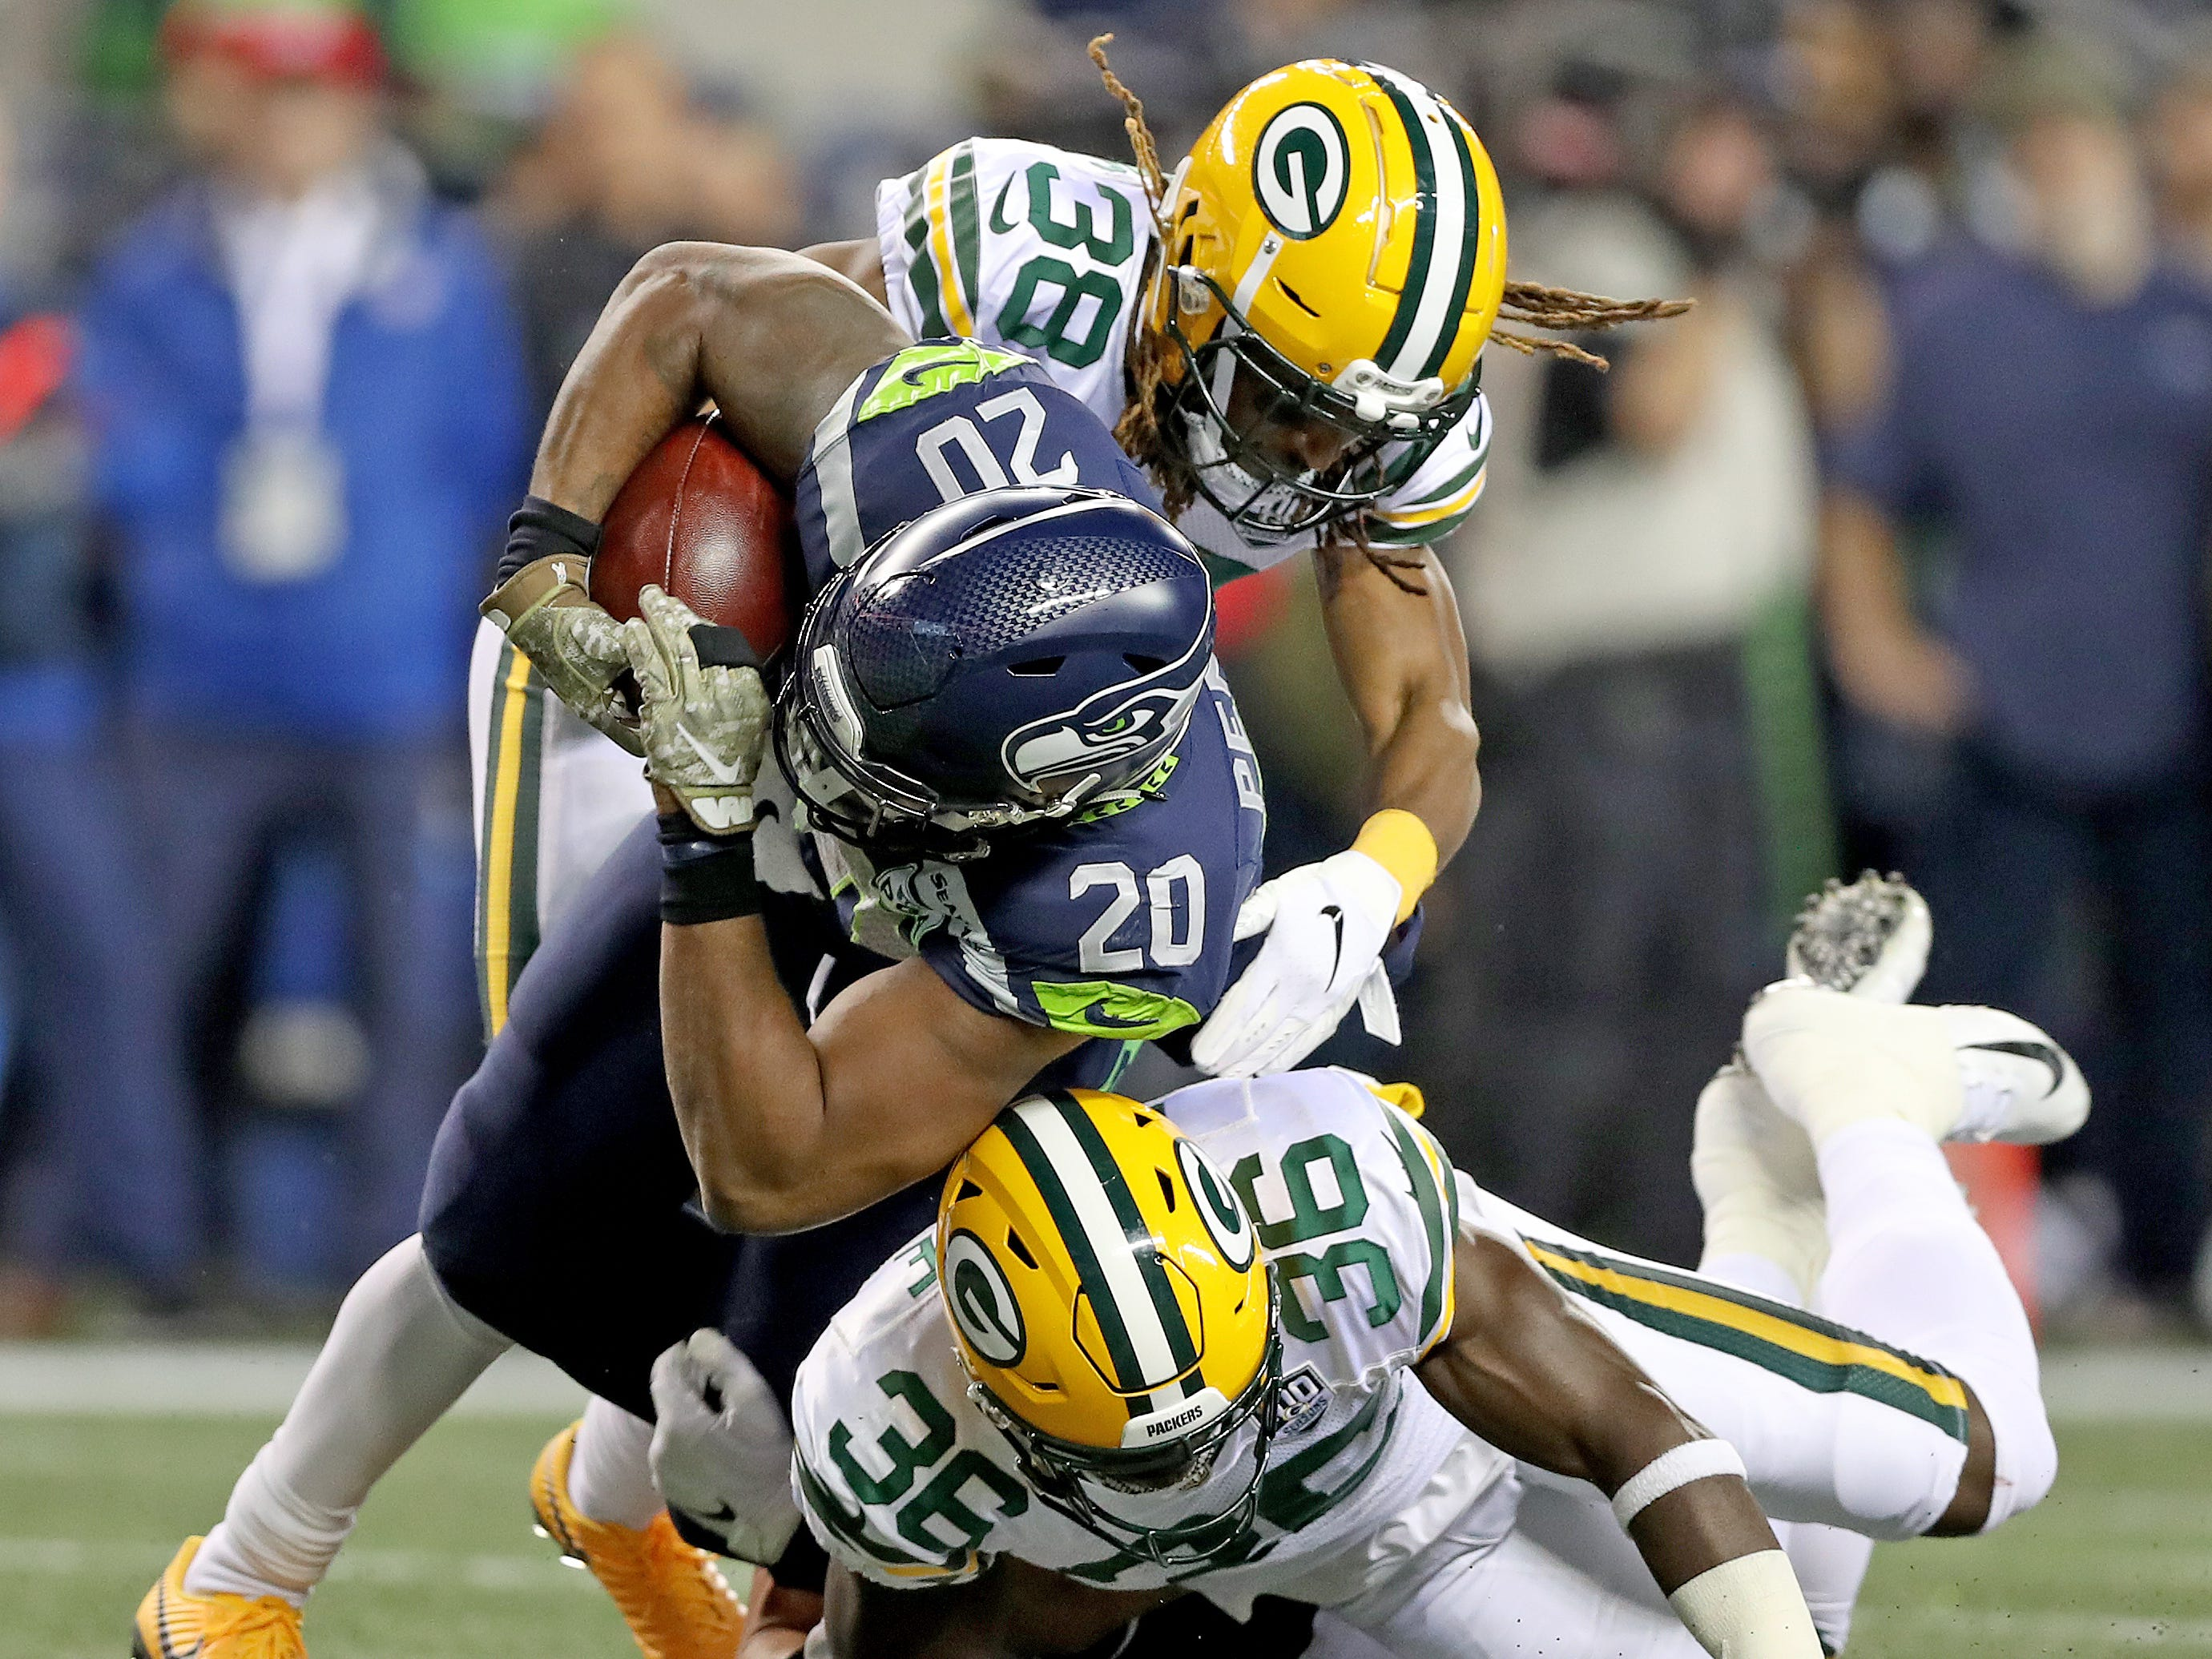 Green Bay Packers cornerback Tramon Williams (38) and defensive back Raven Greene (36) combine to tackle running back Rashaad Penny (20) against the Seattle Seahawks at CenturyLink Field Thursday, November 15, 2018 in Seattle, WA. Jim Matthews/USA TODAY NETWORK-Wis